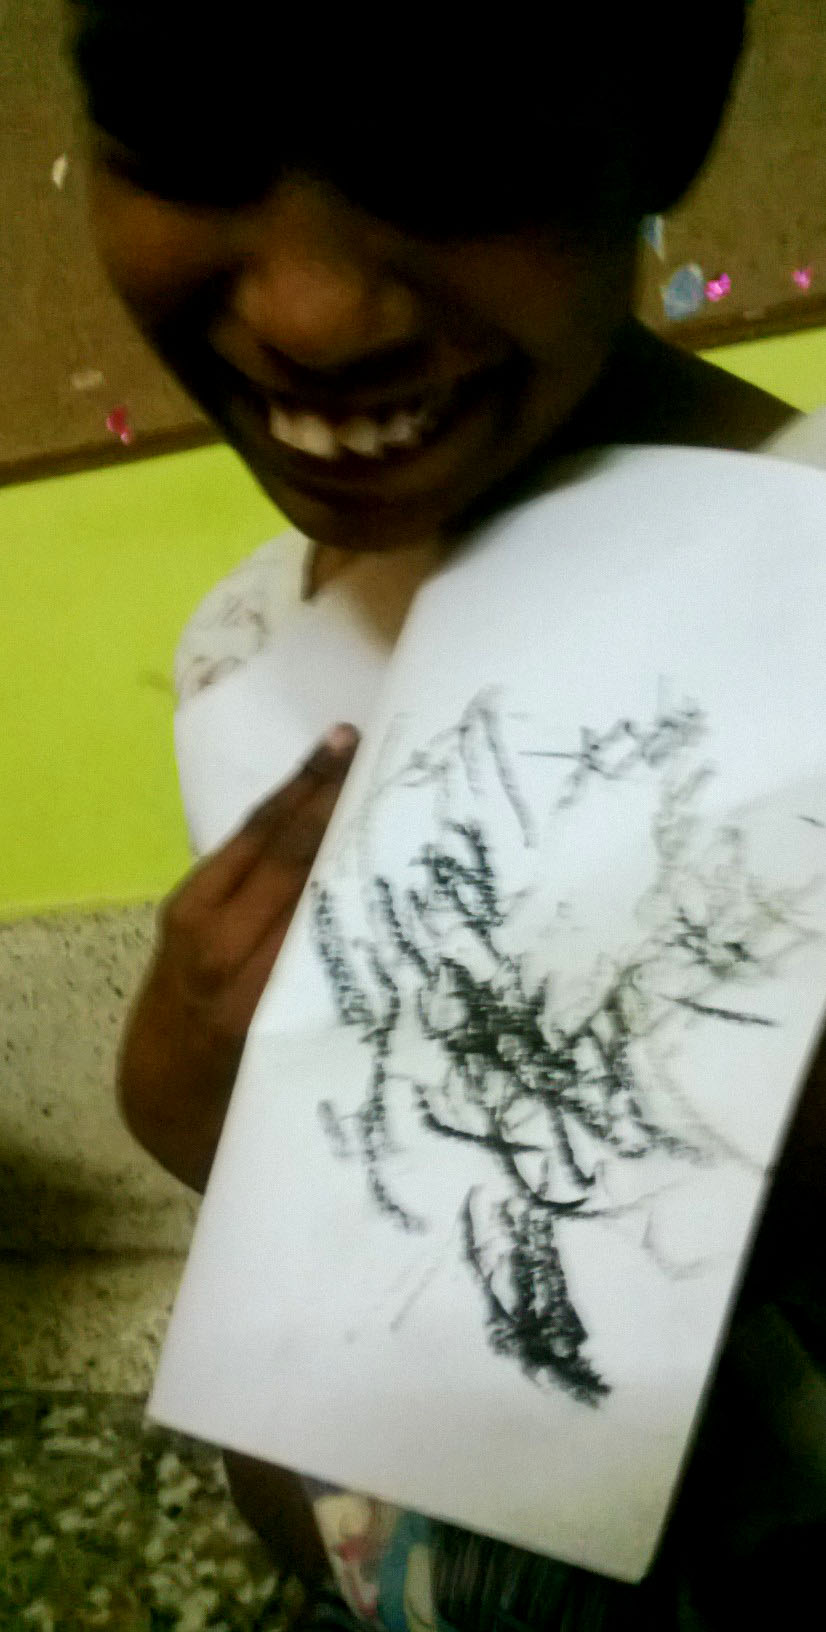 shuktara - Guria Blackstar art project